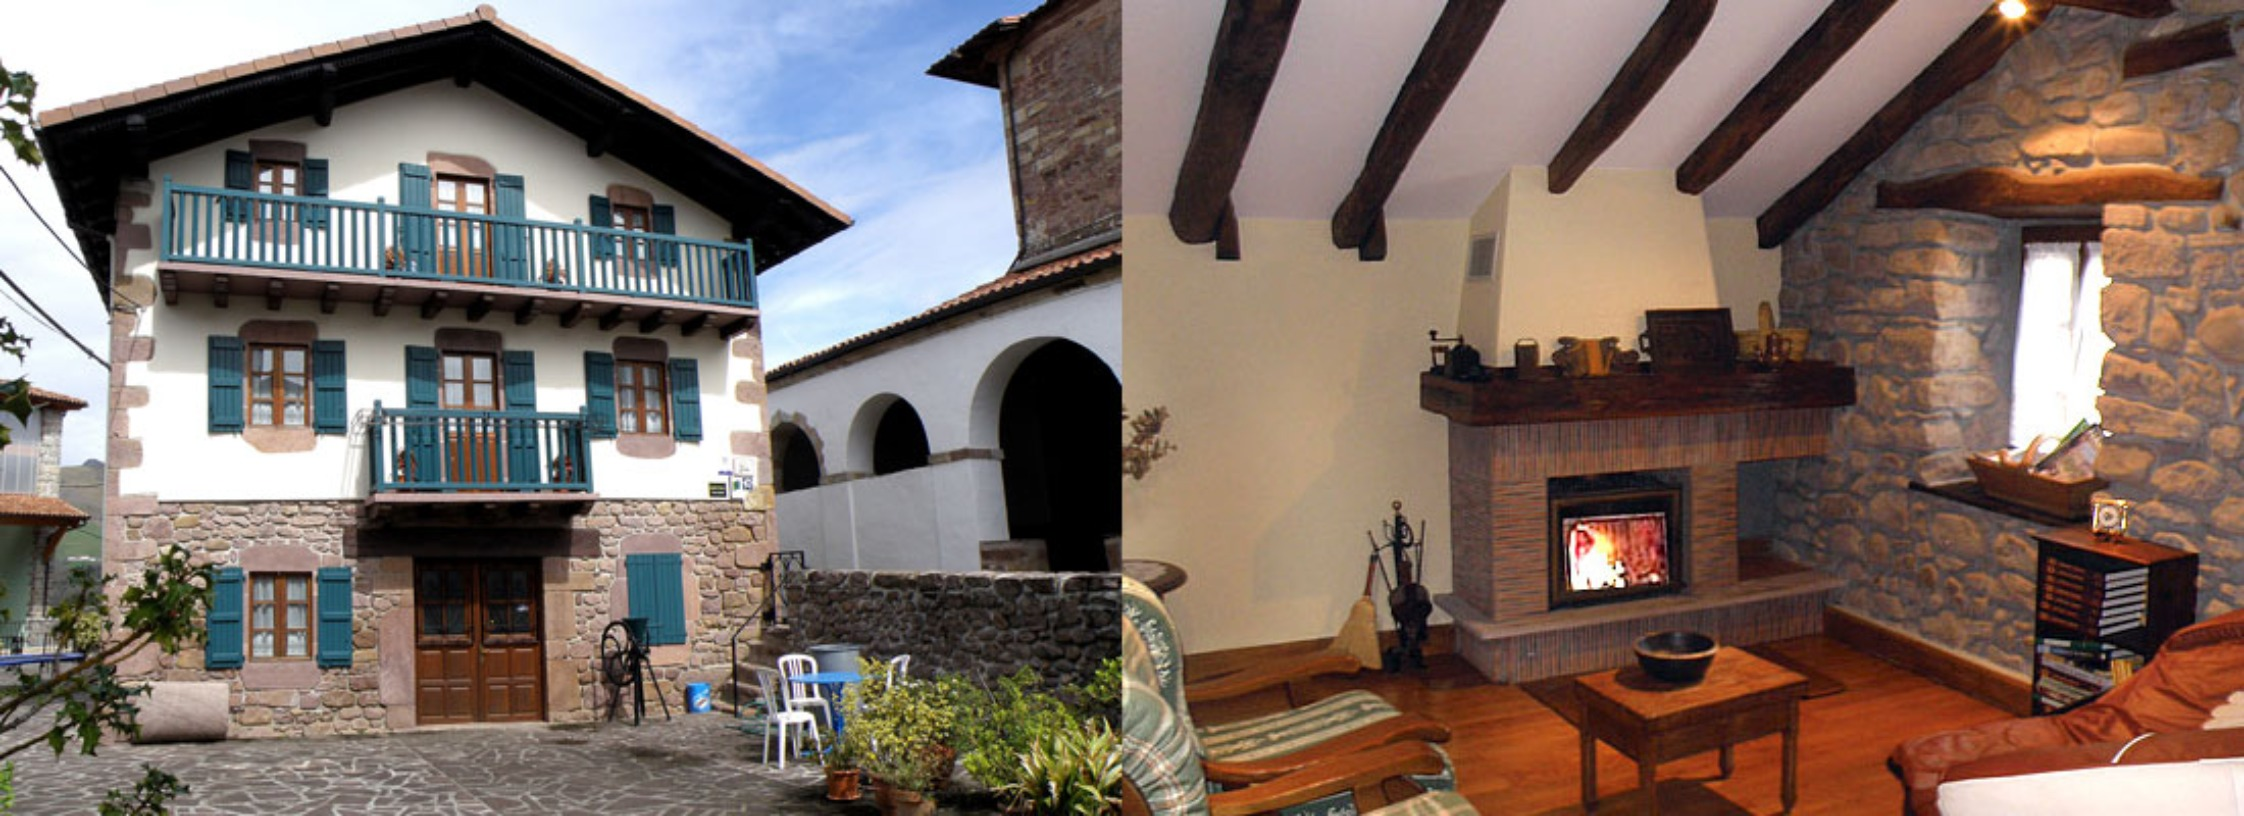 A living room with a fireplace in front of a building at Casa Rural Gontxea.